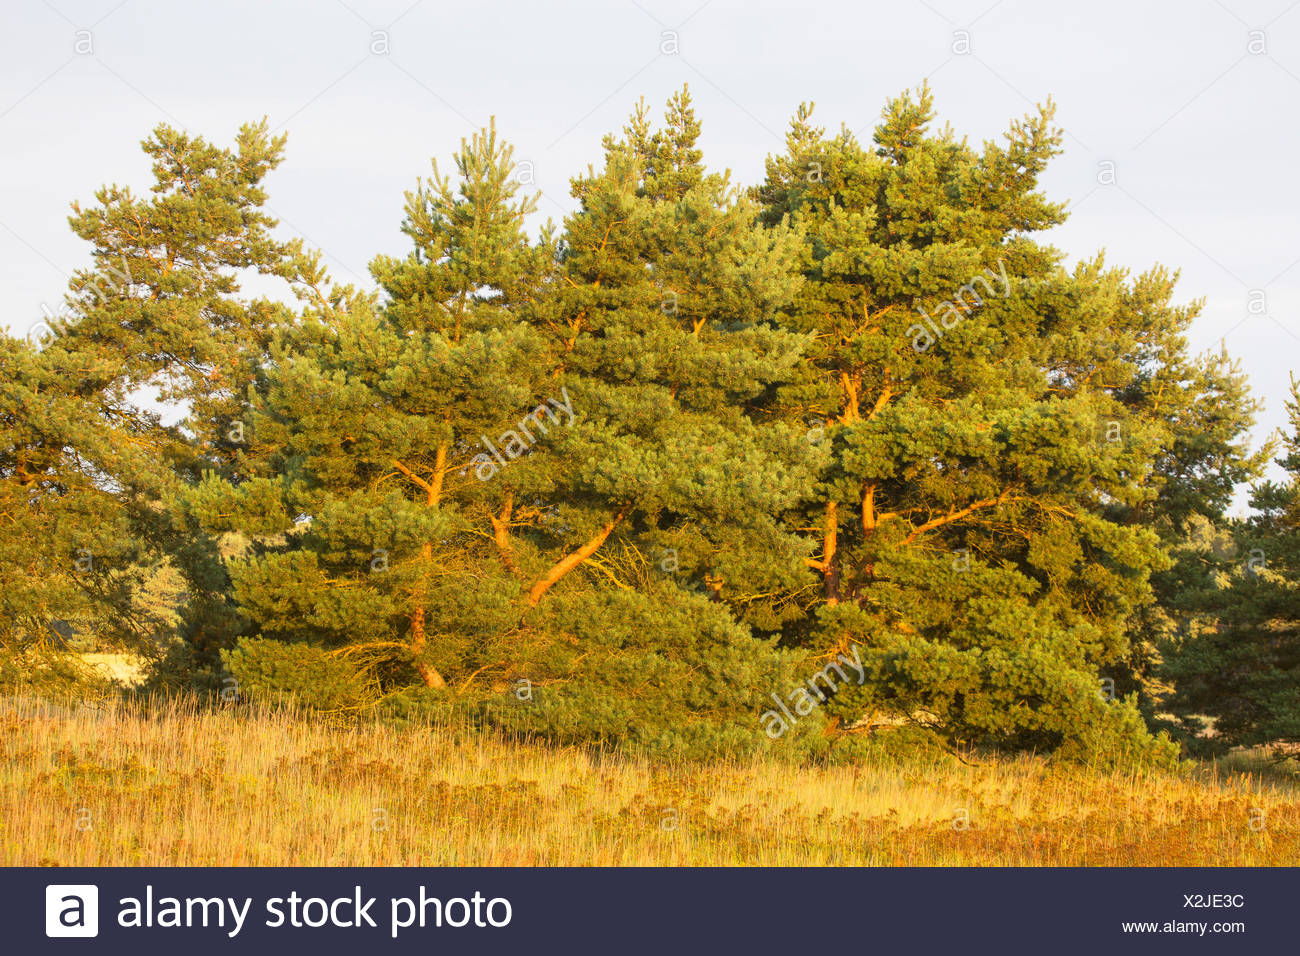 Scotch pine, Scots pine (Pinus sylvestris), in a meadow, Germany Stock Photo